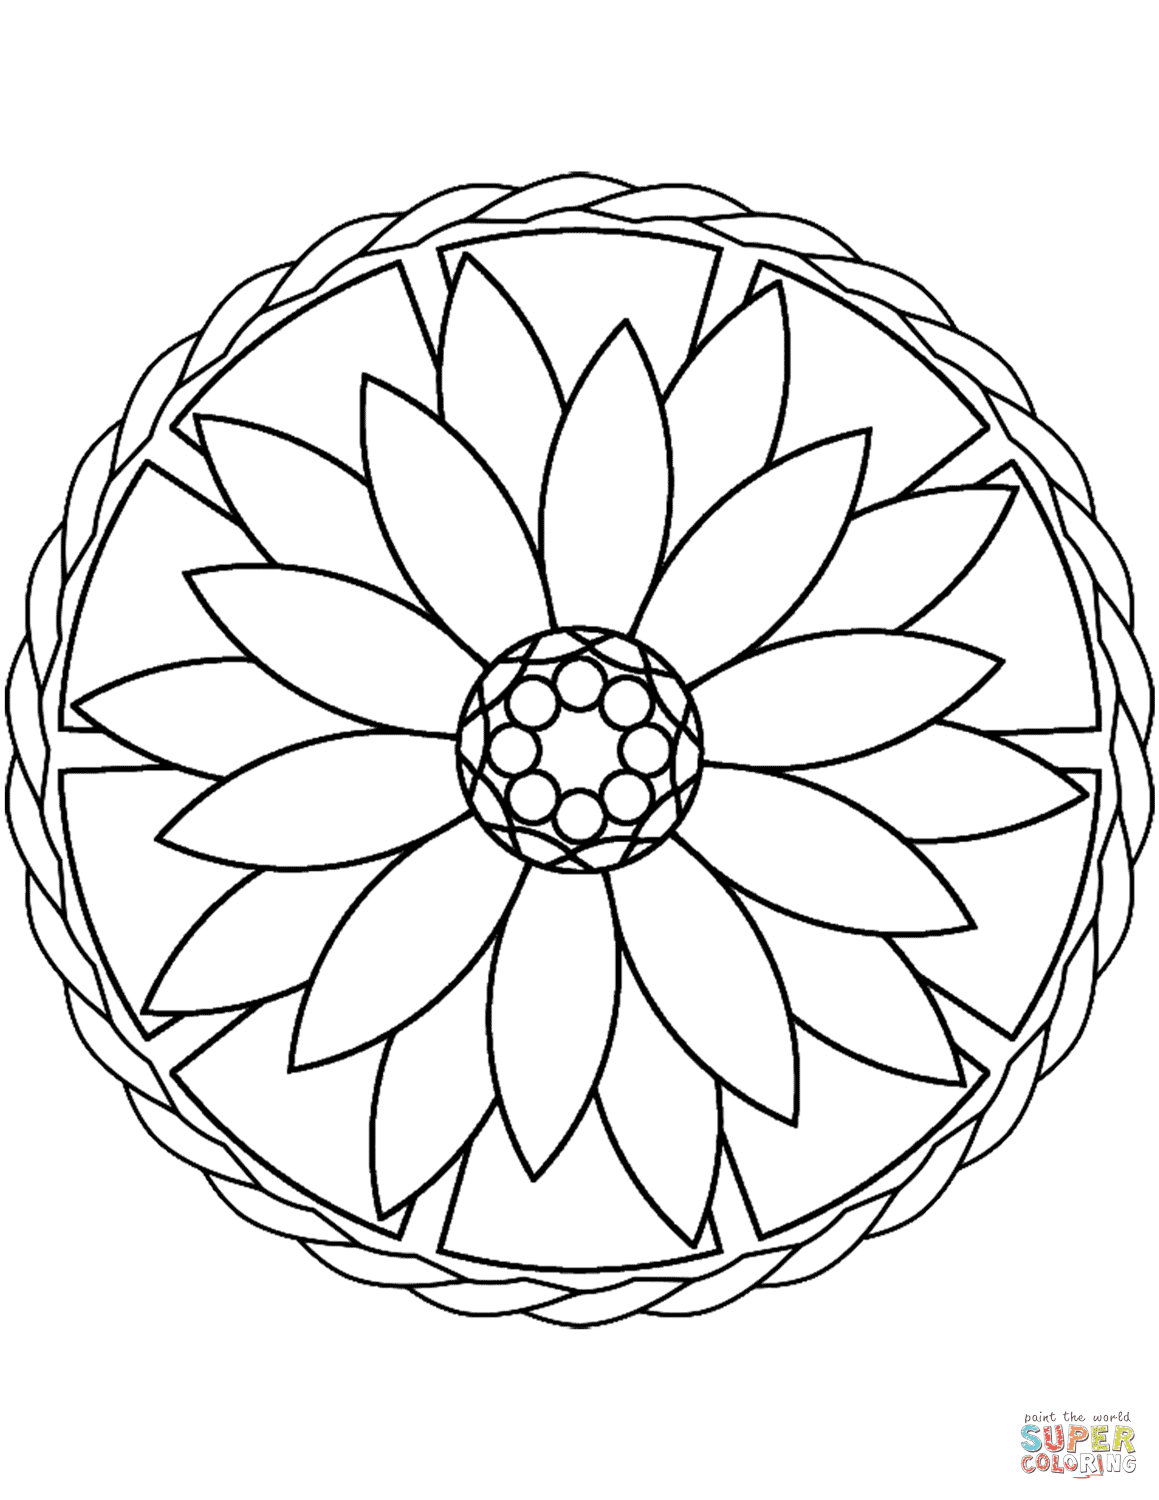 Mandail - Free Coloring Pages